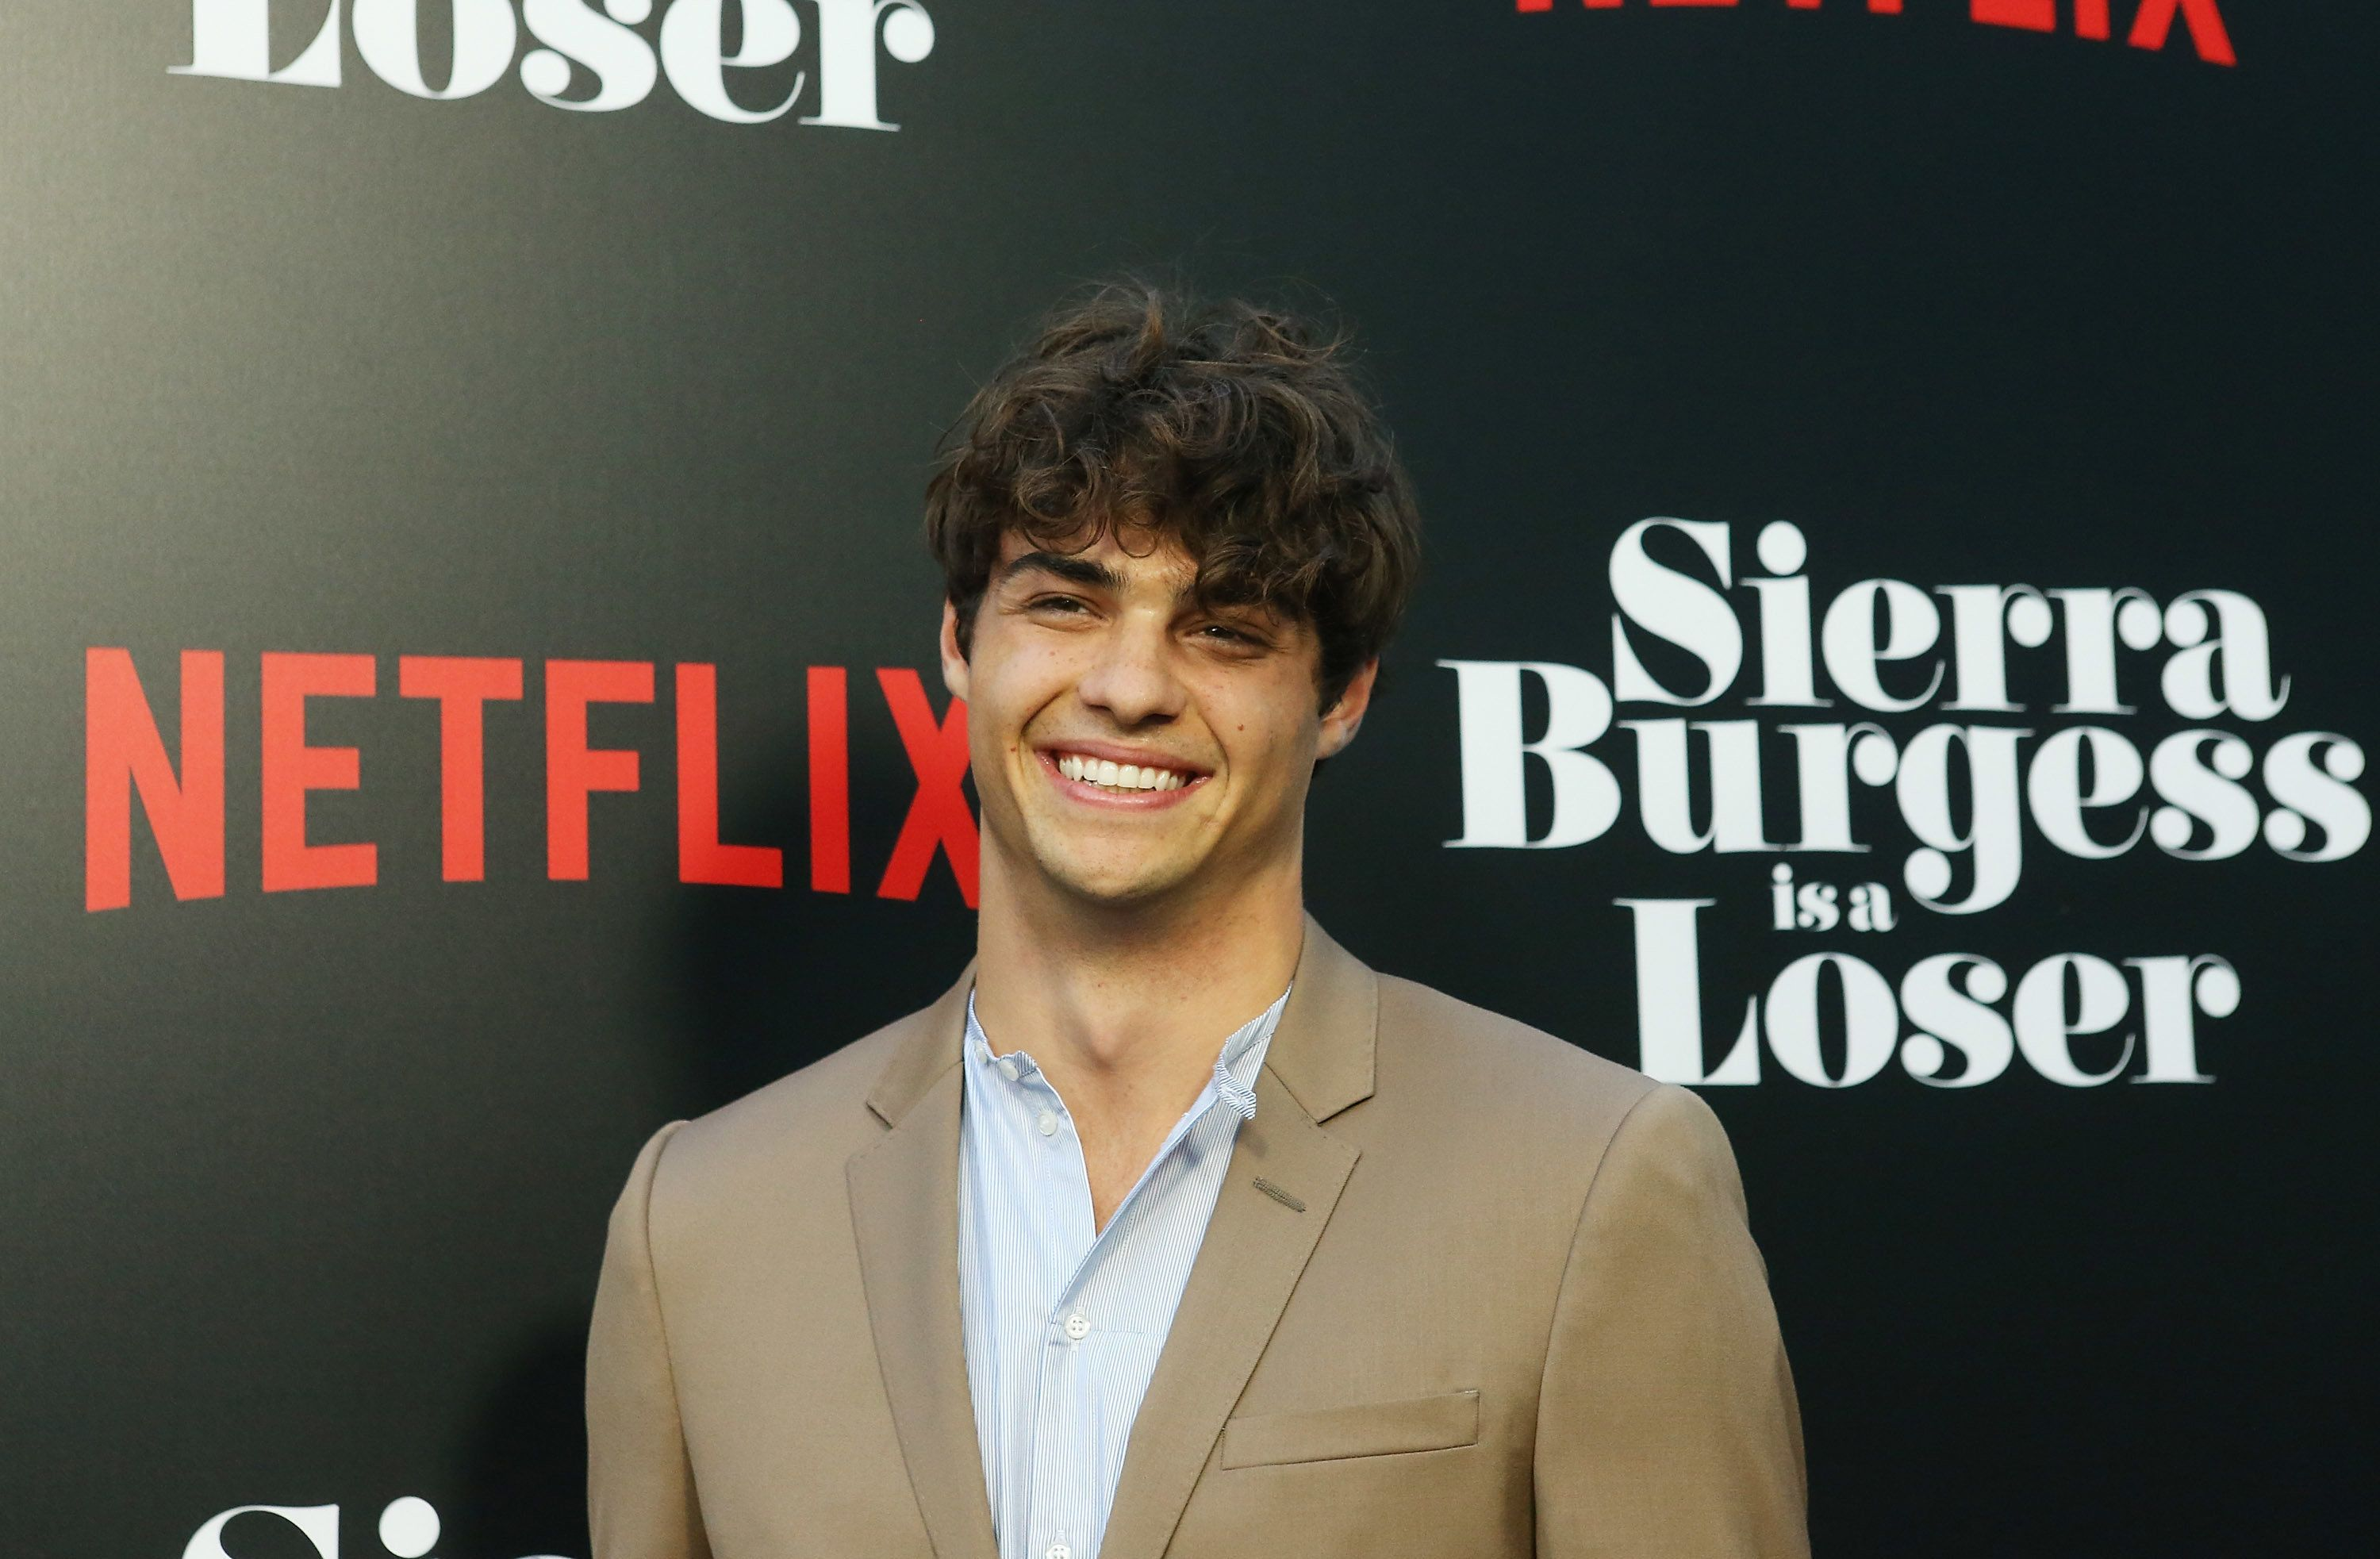 HOLLYWOOD, CA - AUGUST 30:  Noah Centineo arrives to the Los Angeles premiere of Netflix's 'Sierra Burgess Is A Loser' held at ArcLight Hollywood on August 30, 2018 in Hollywood, California.  (Photo by Michael Tran/FilmMagic)